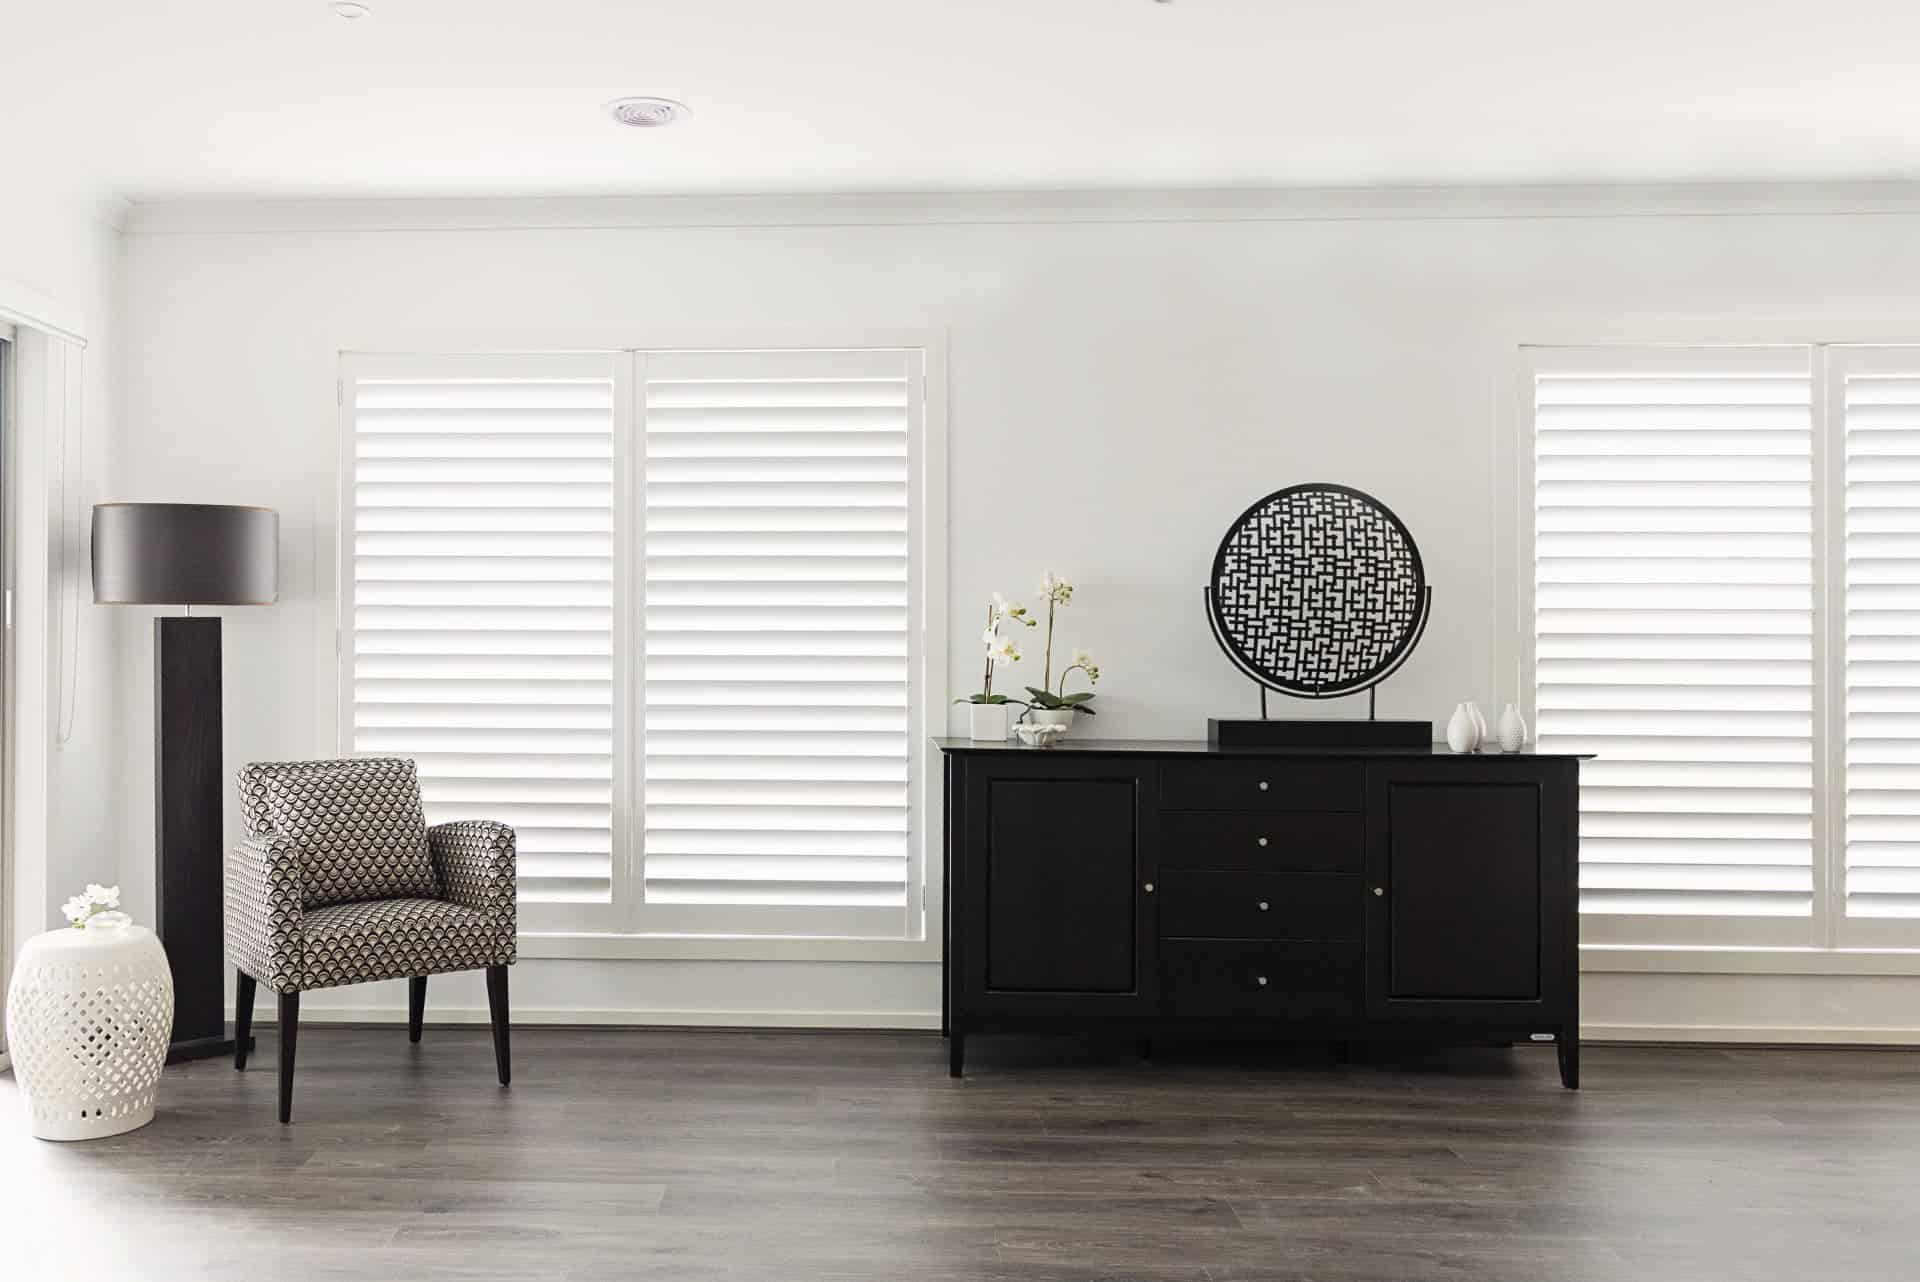 Photo of Dunhill Aluminium Shutters - Hinged White